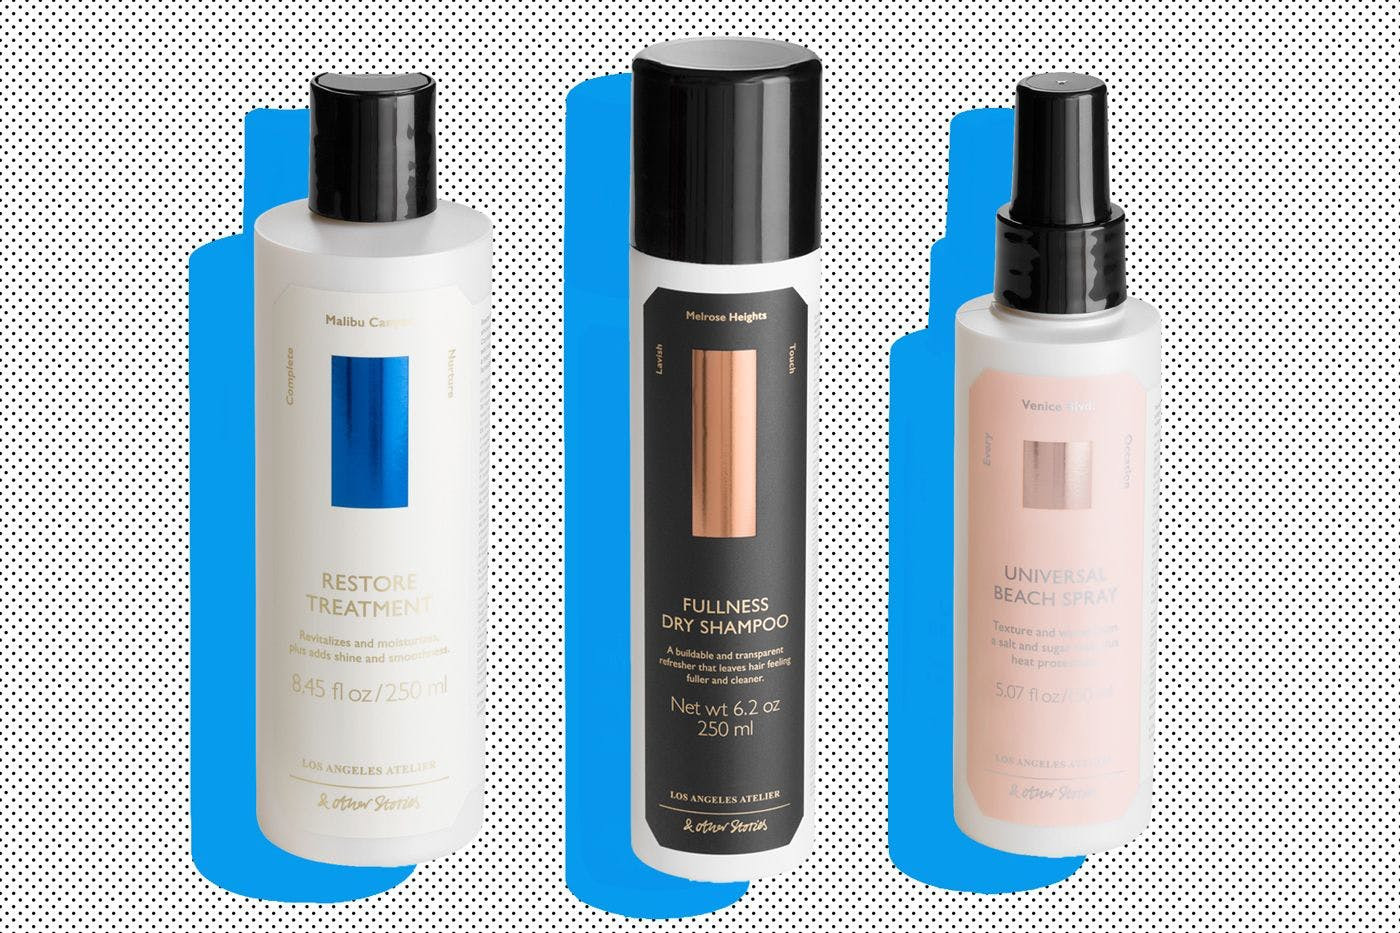 & Other Stories has released a new hair care range that's as covetable as their clothes, Stylist